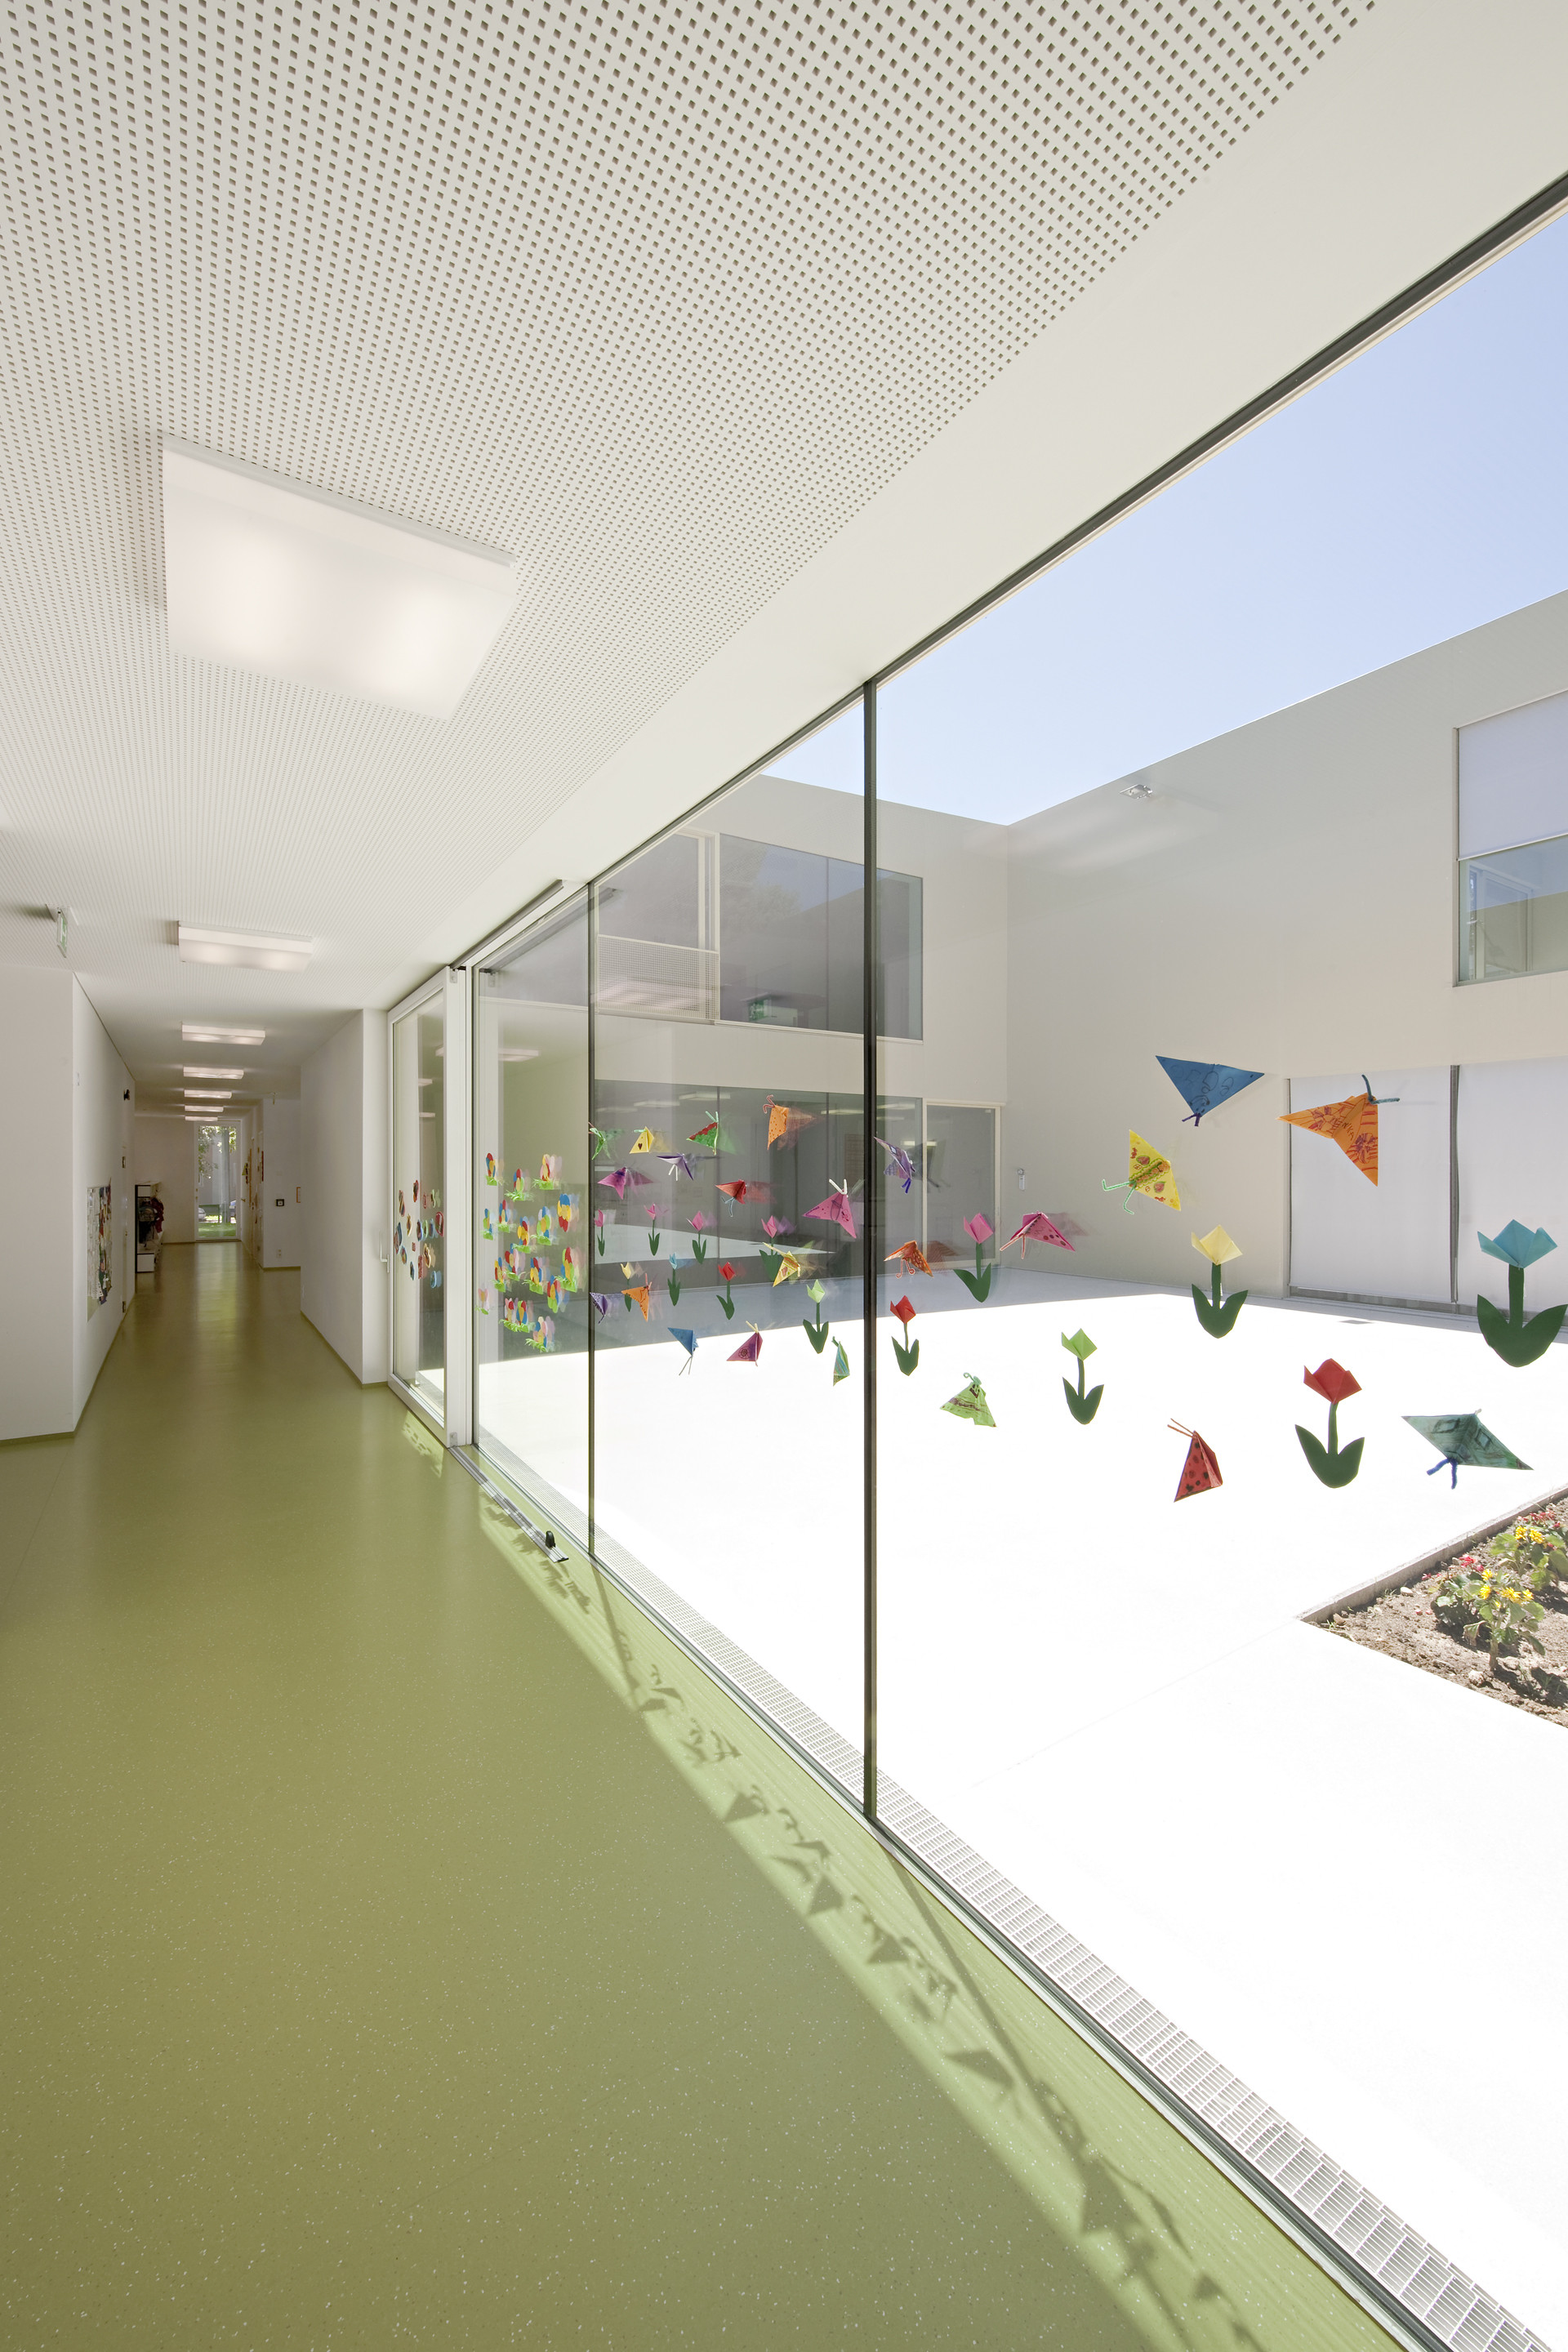 Kindergarten and after-school Care Center / Alexa Zahn architects